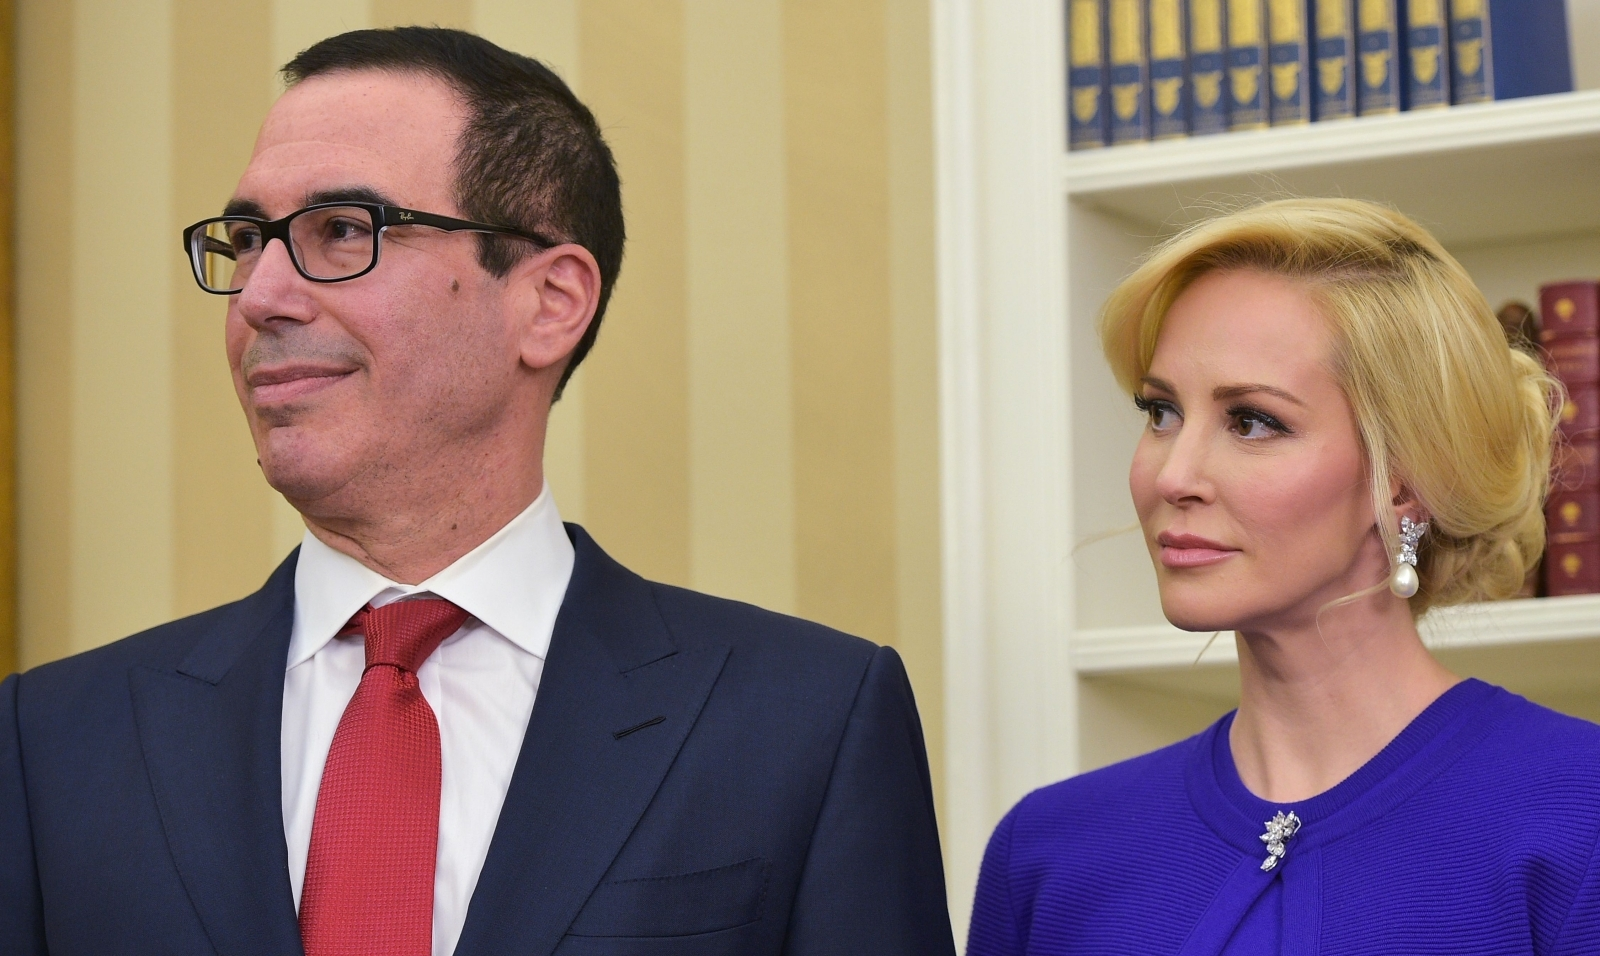 Watchdog requests documents about Mnuchin and wife's Ky. trip timed with eclipse